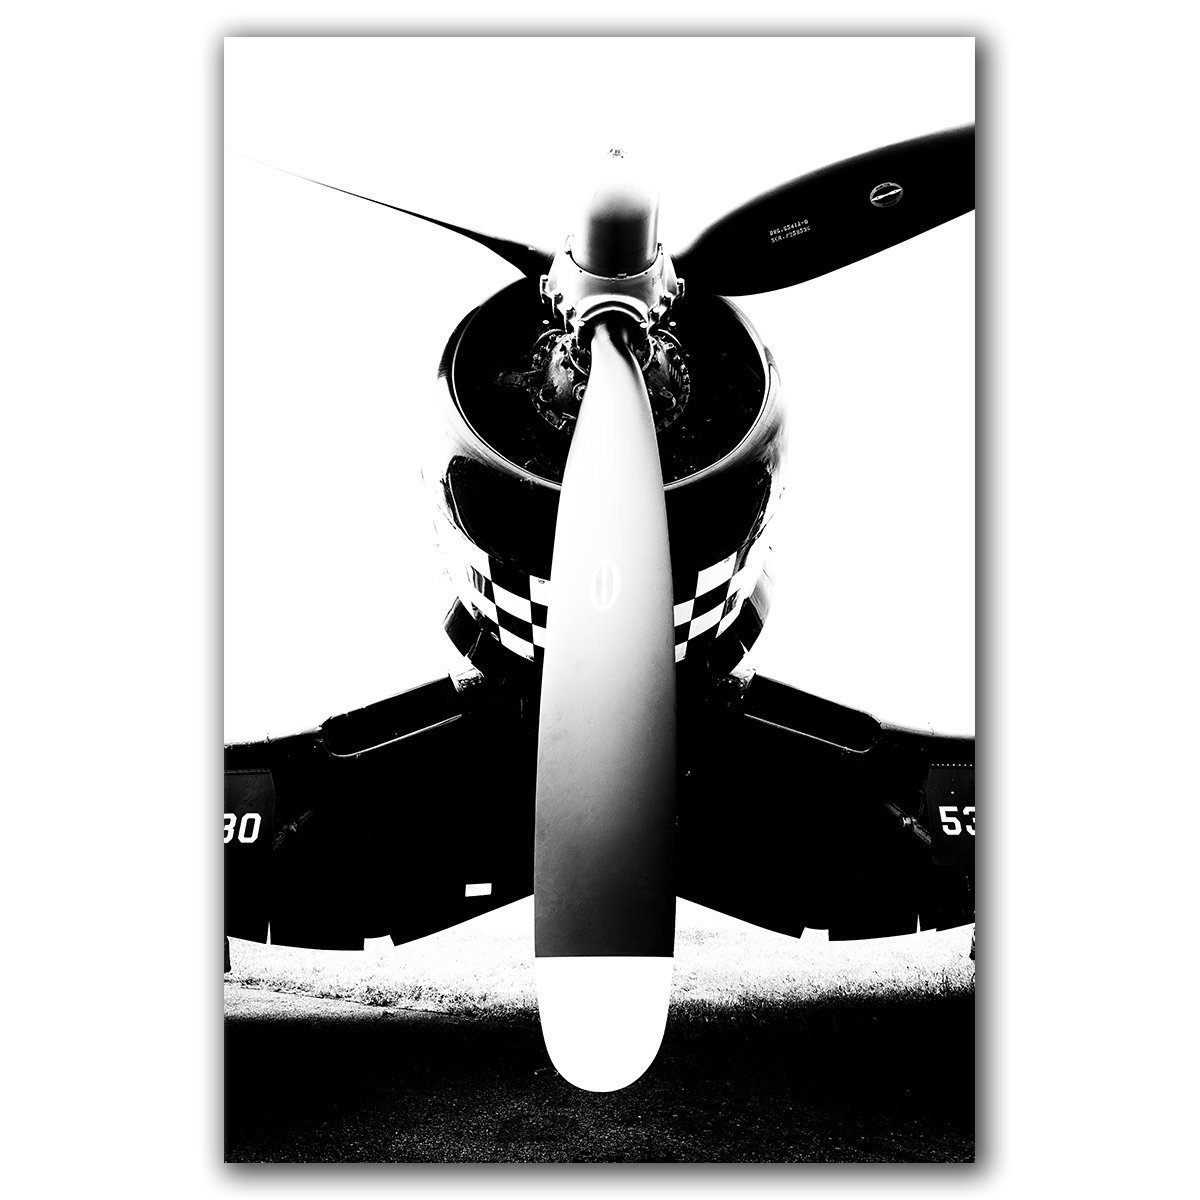 Airplane propeller photograph, Corsair, abstract black and white aviation metal print on aluminum, ready to hang.